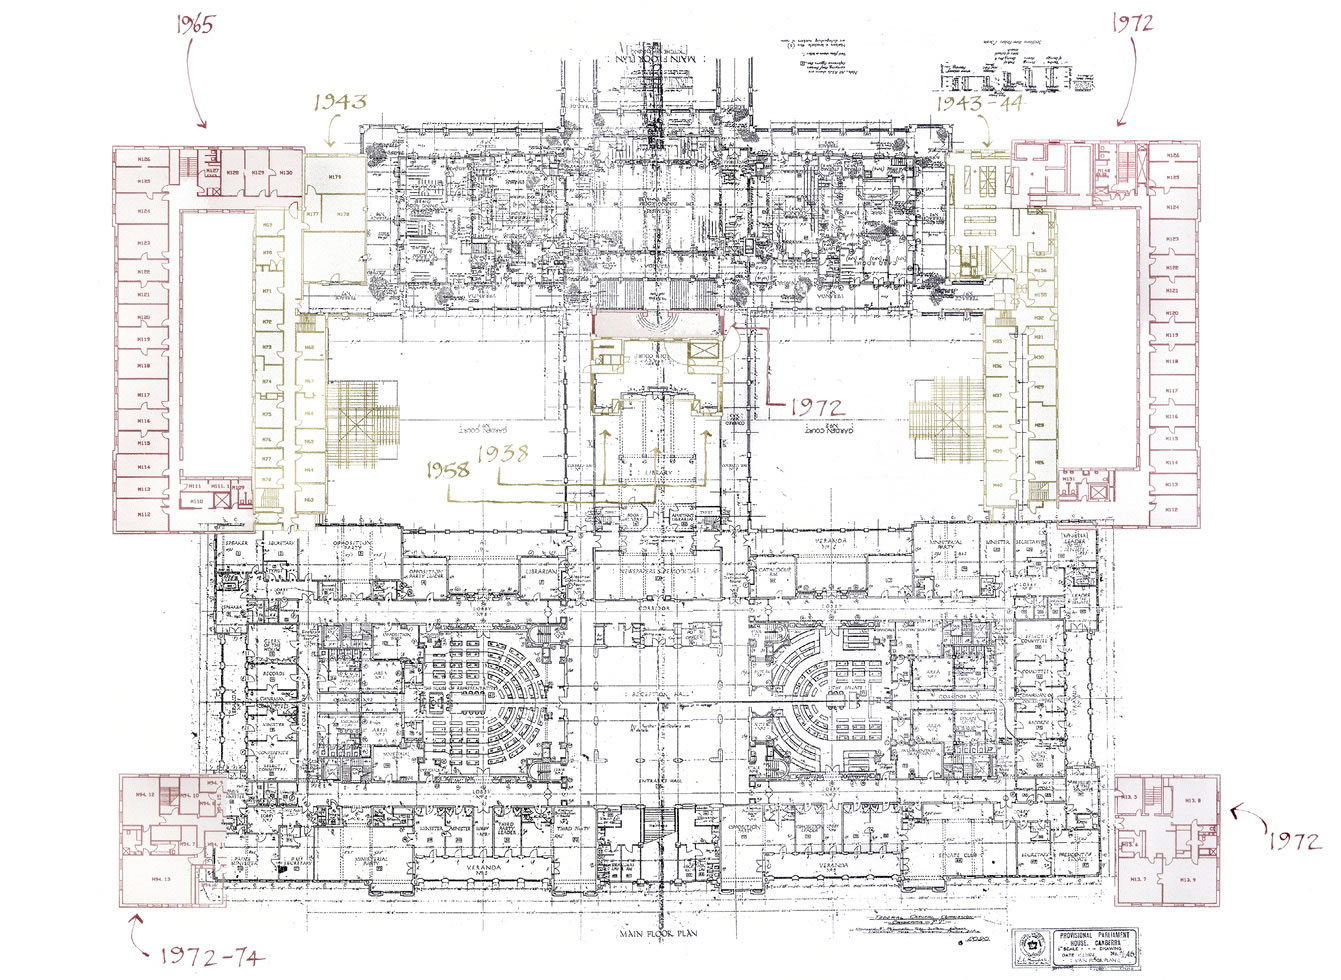 Plan drawing of the main floor showing additions in 1938, 1943, 1943-44, 1958, 1965 and 1972-74.